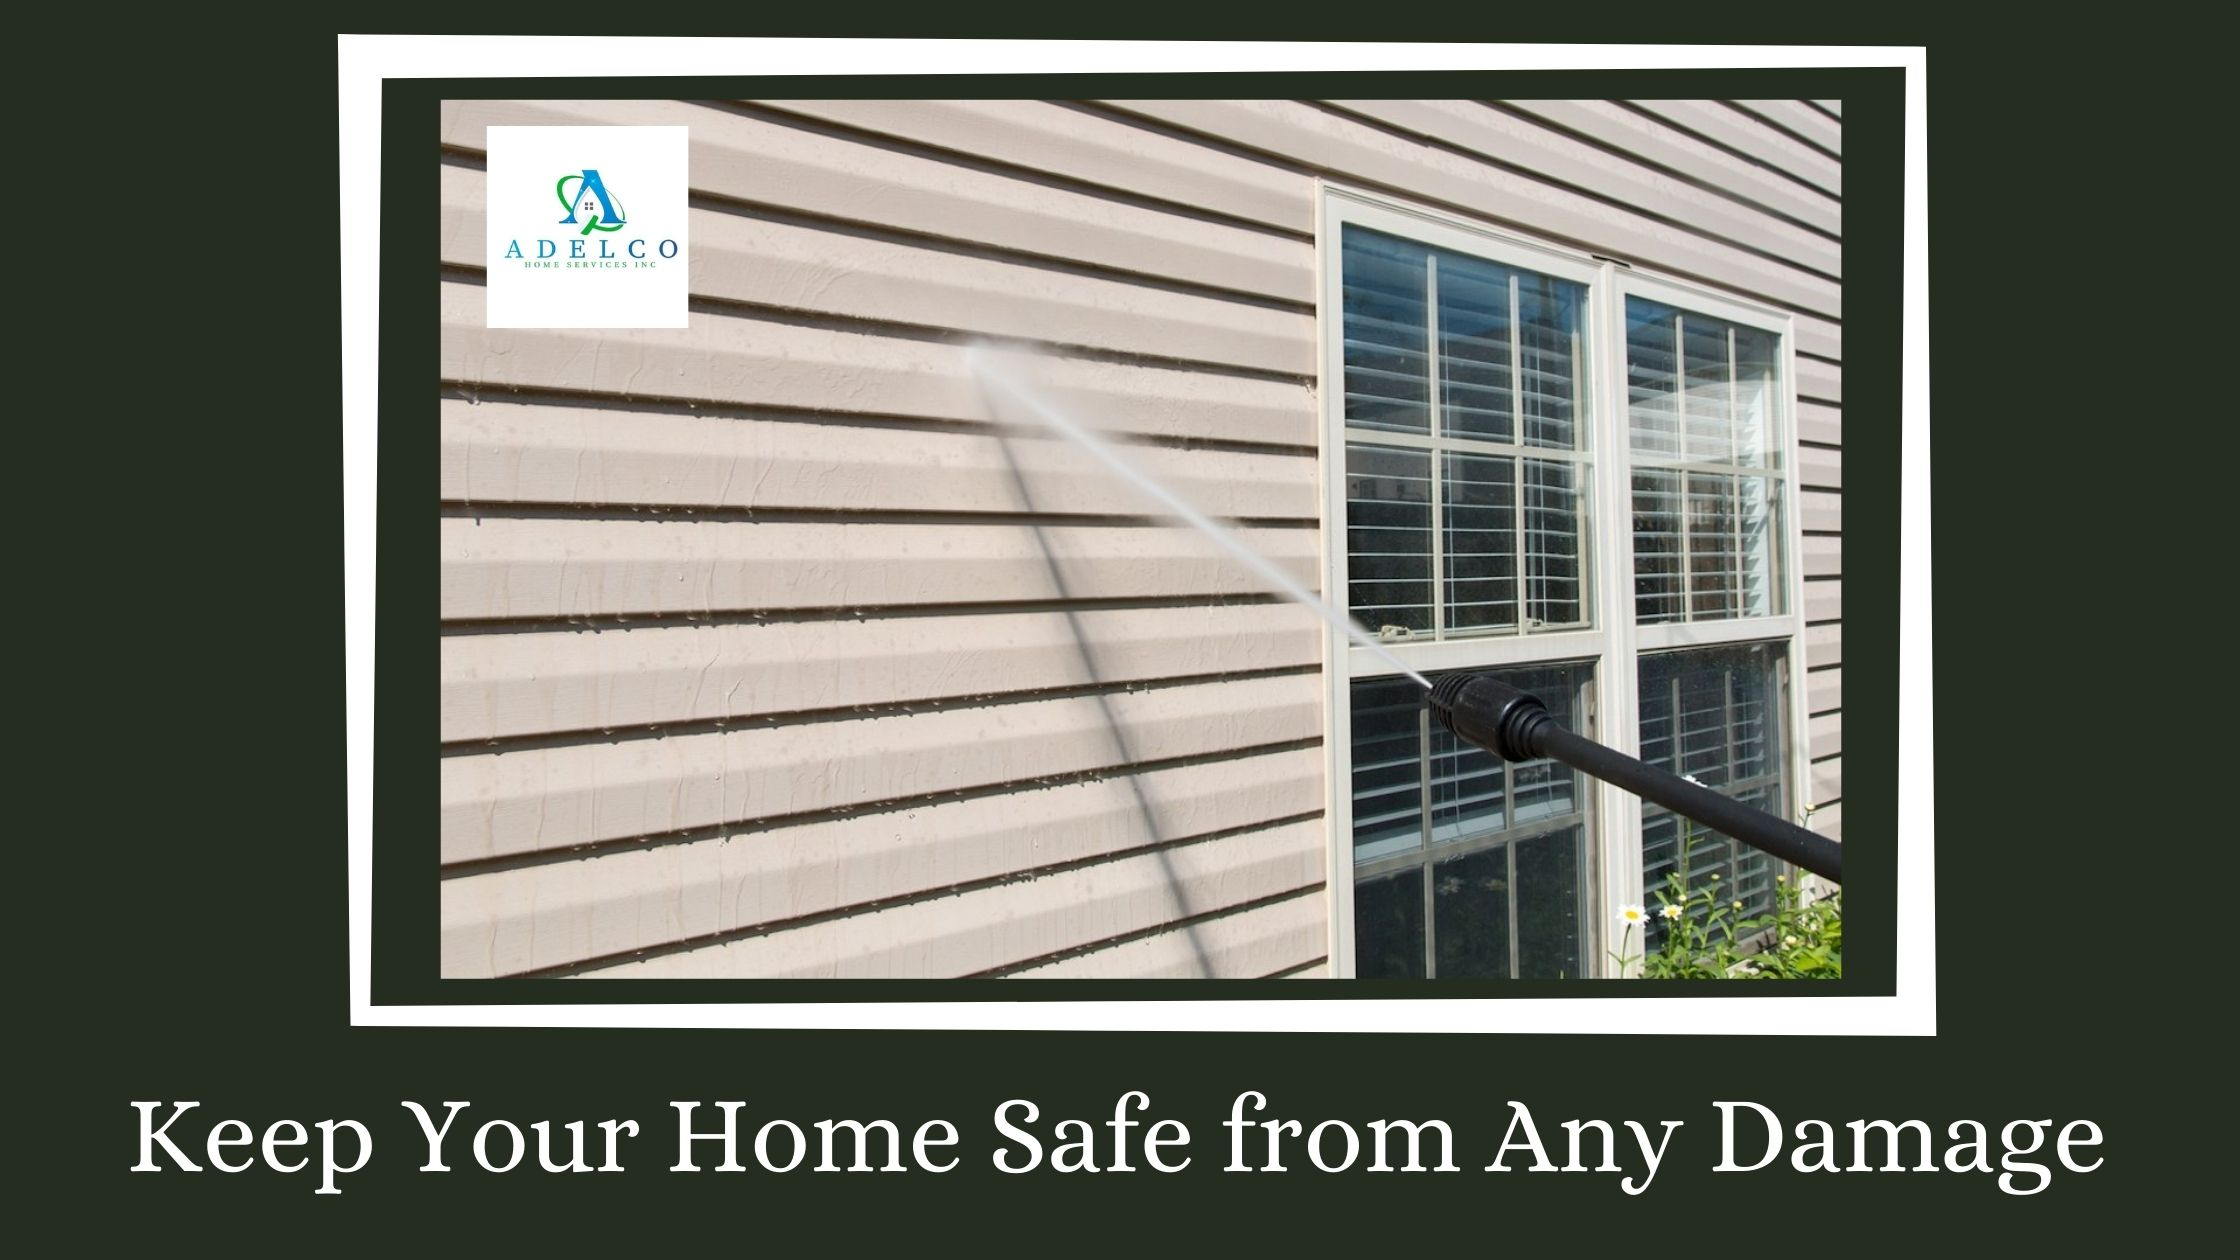 Keep Your Home Safe from Any Damage